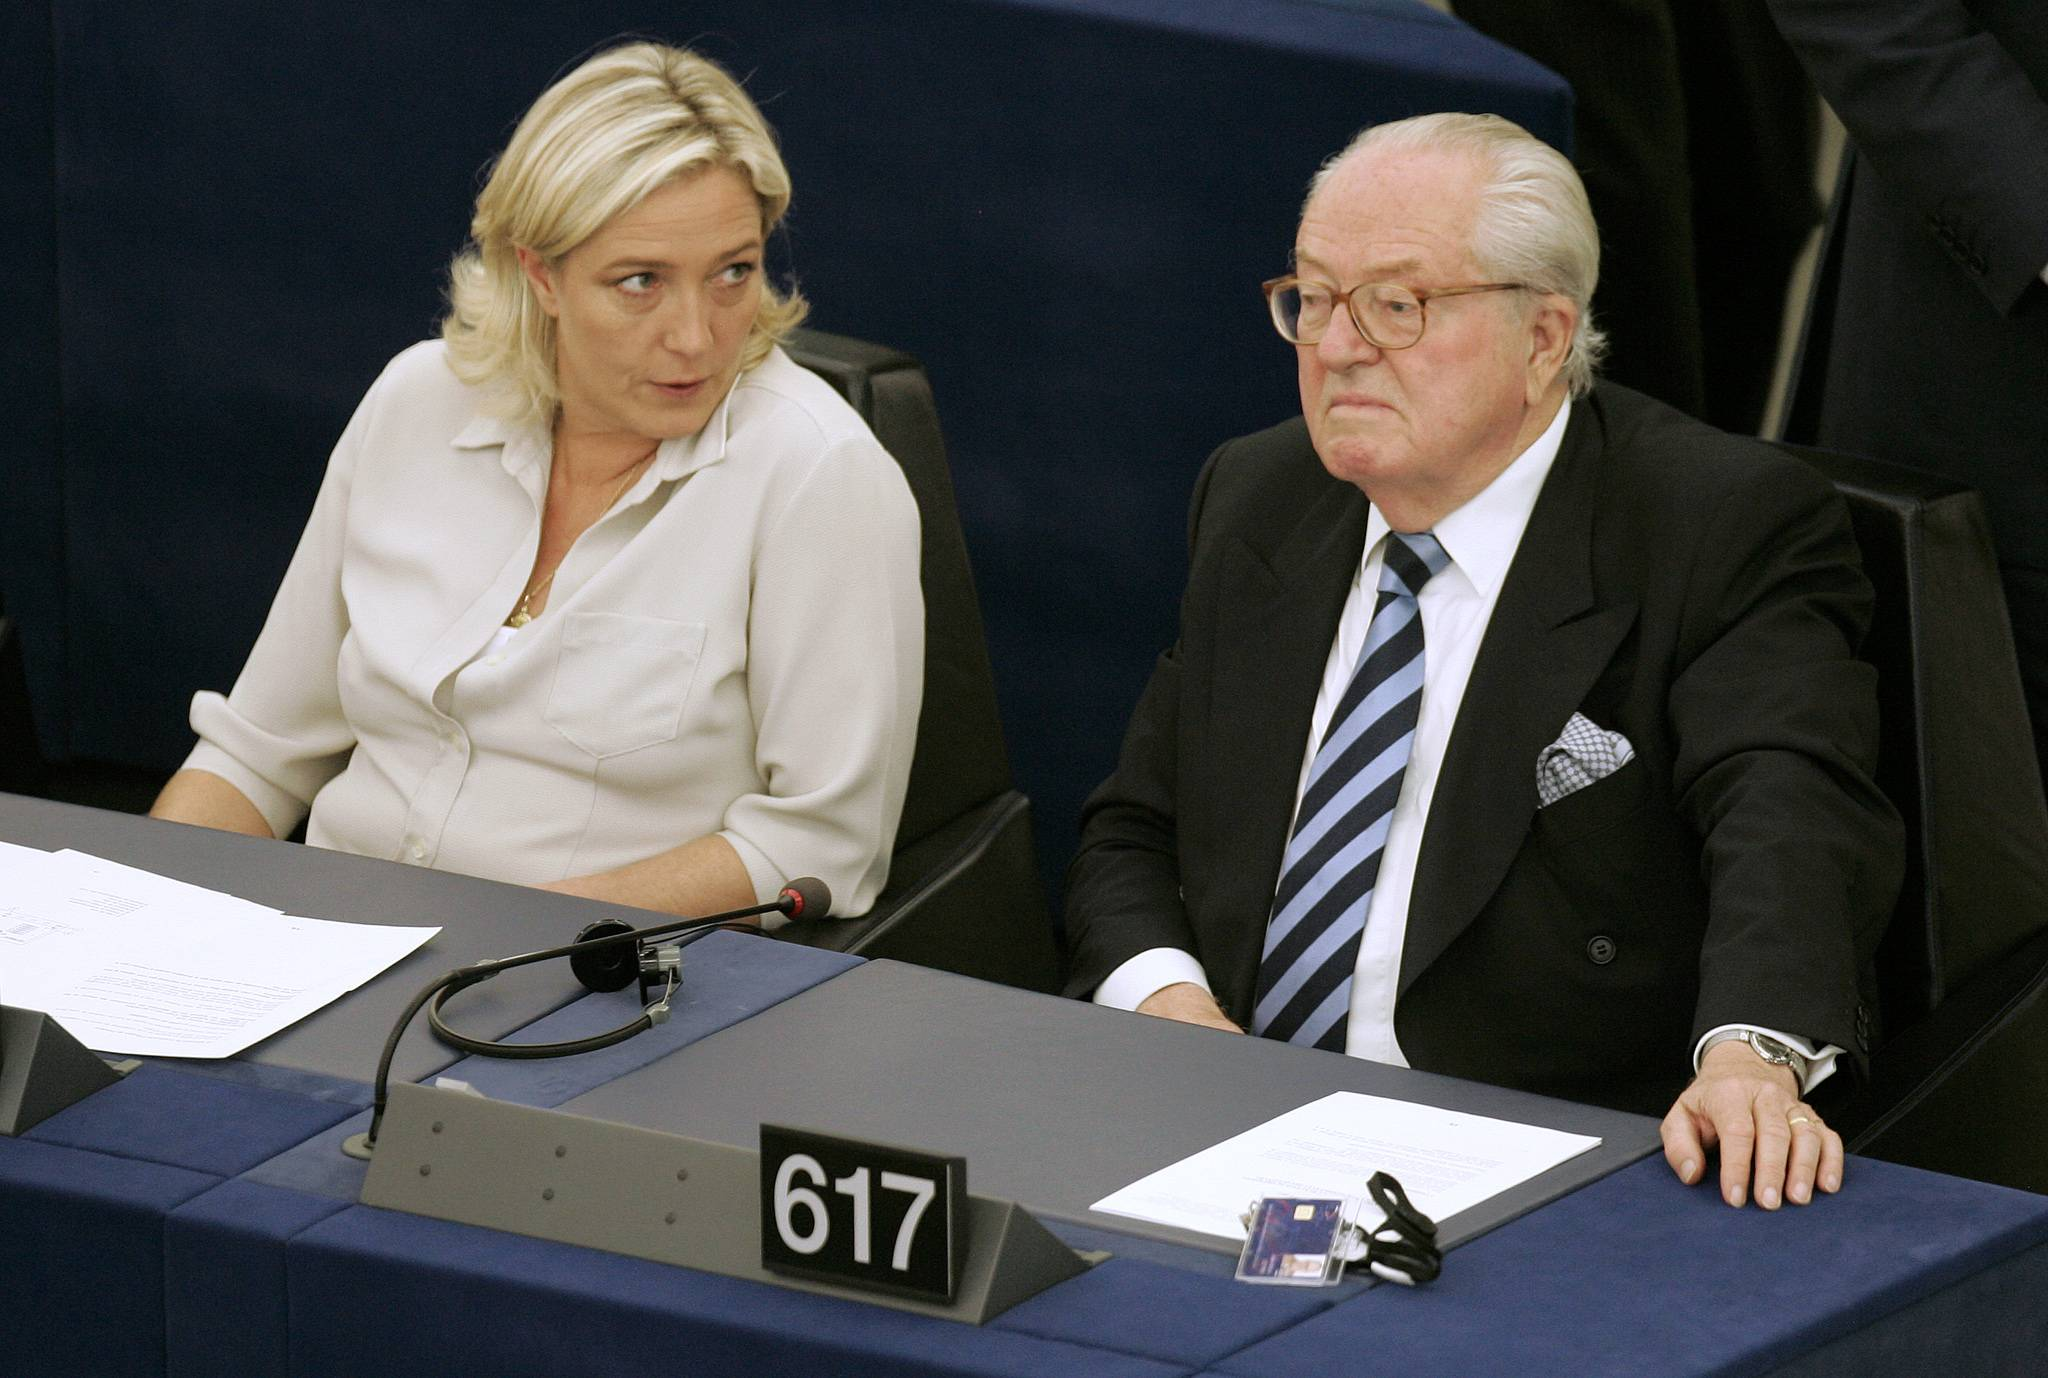 In this July 14, 2009 file photo Jean-Marie Le Pen, right, and his daughter Marine Le Pen sit at the European Parliament, in Strasbourg, eastern France.  A tempest has been unleashed upon the House of Le Pen, the seat of France's rising far right, with the wounded patriarch and founder of the National Front lashing out at his political heir and daughter in a feud over an anti-Semitic smear.